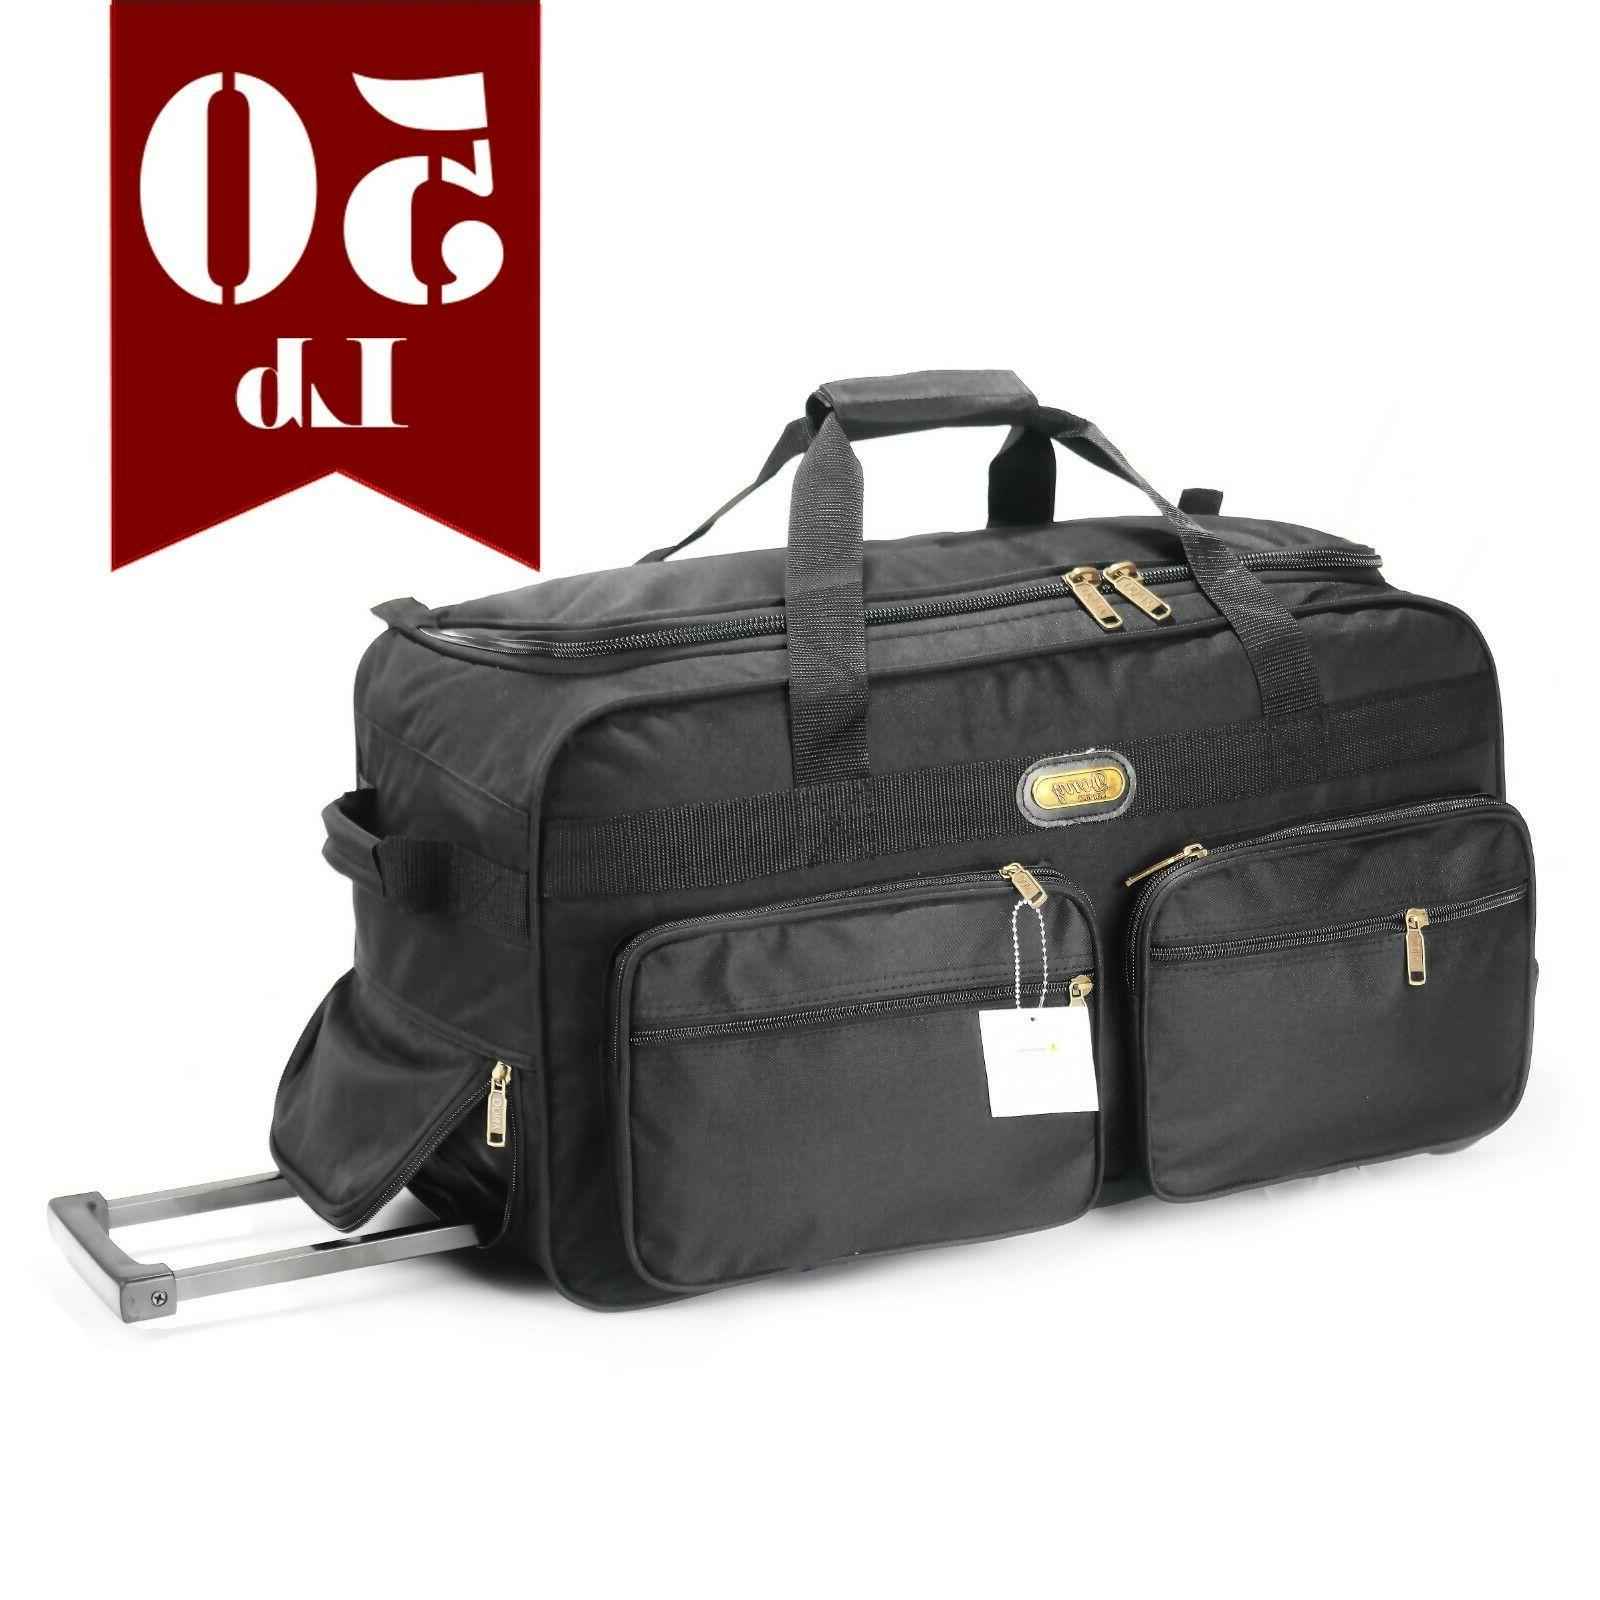 Luggage Rolling Bag Carry Lighweight